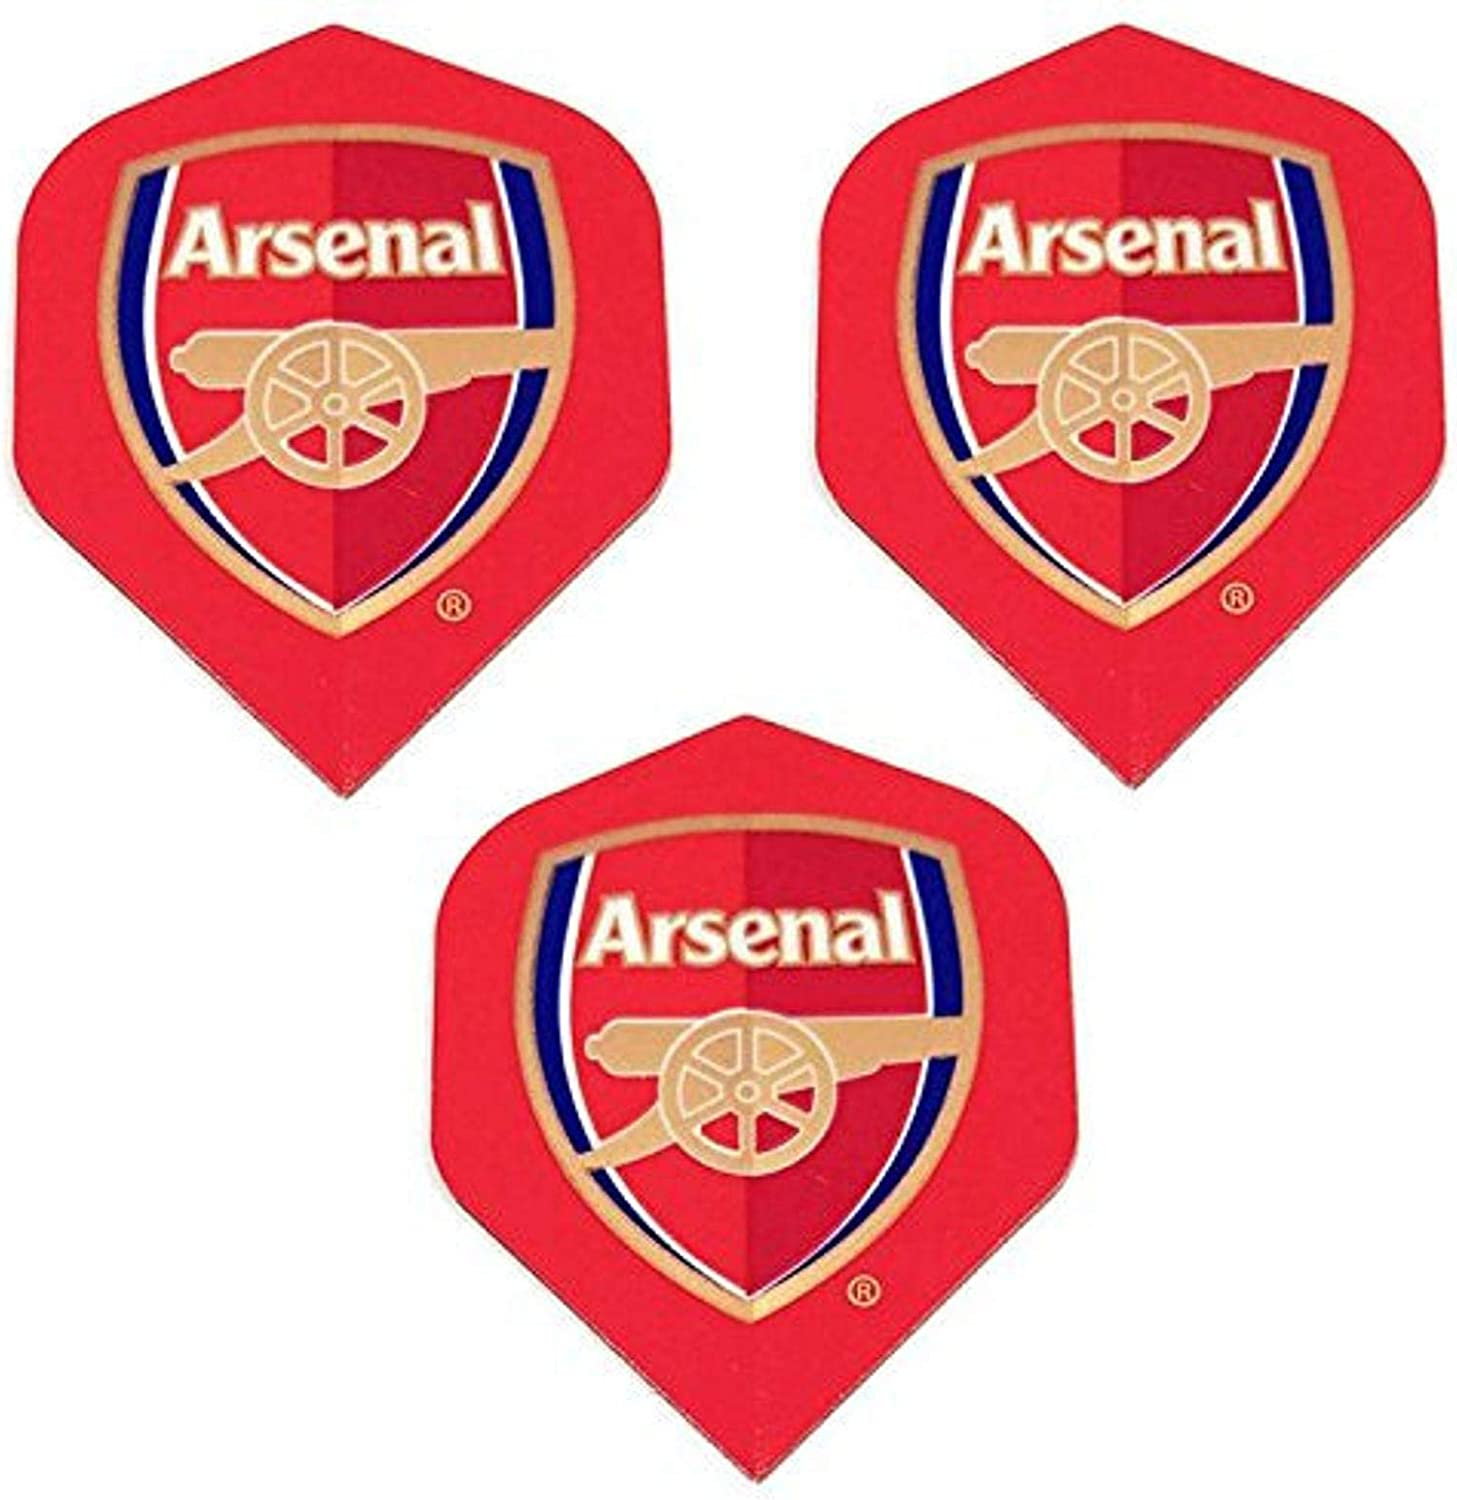 Art Attack 9 Pack Arsenal Product Soccer Football 75 League Micr Premier Super sale period limited